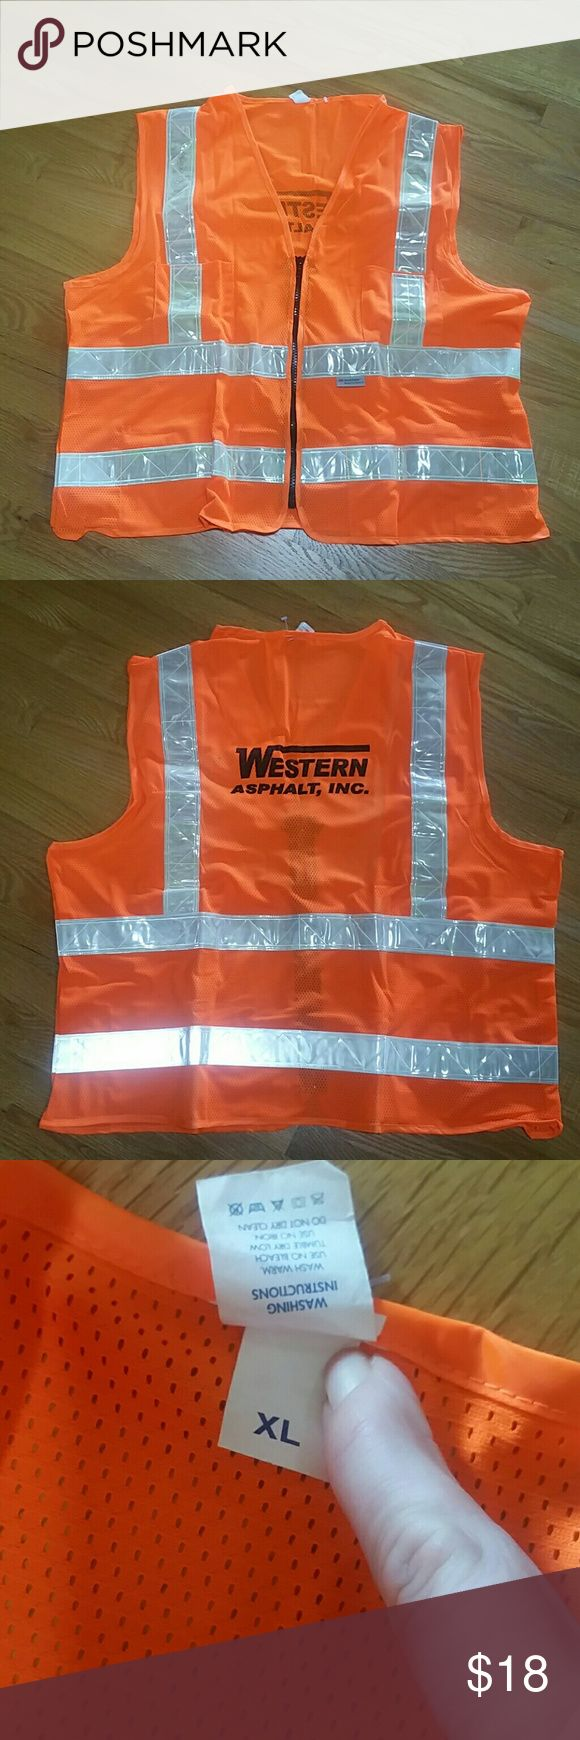 Construction Safety Reflective Vest Mens XL Brand new never worn Construction Safety Reflective Vest Mens XL  Western Asphalt Inc.  No trades  Can also sell on merc Other